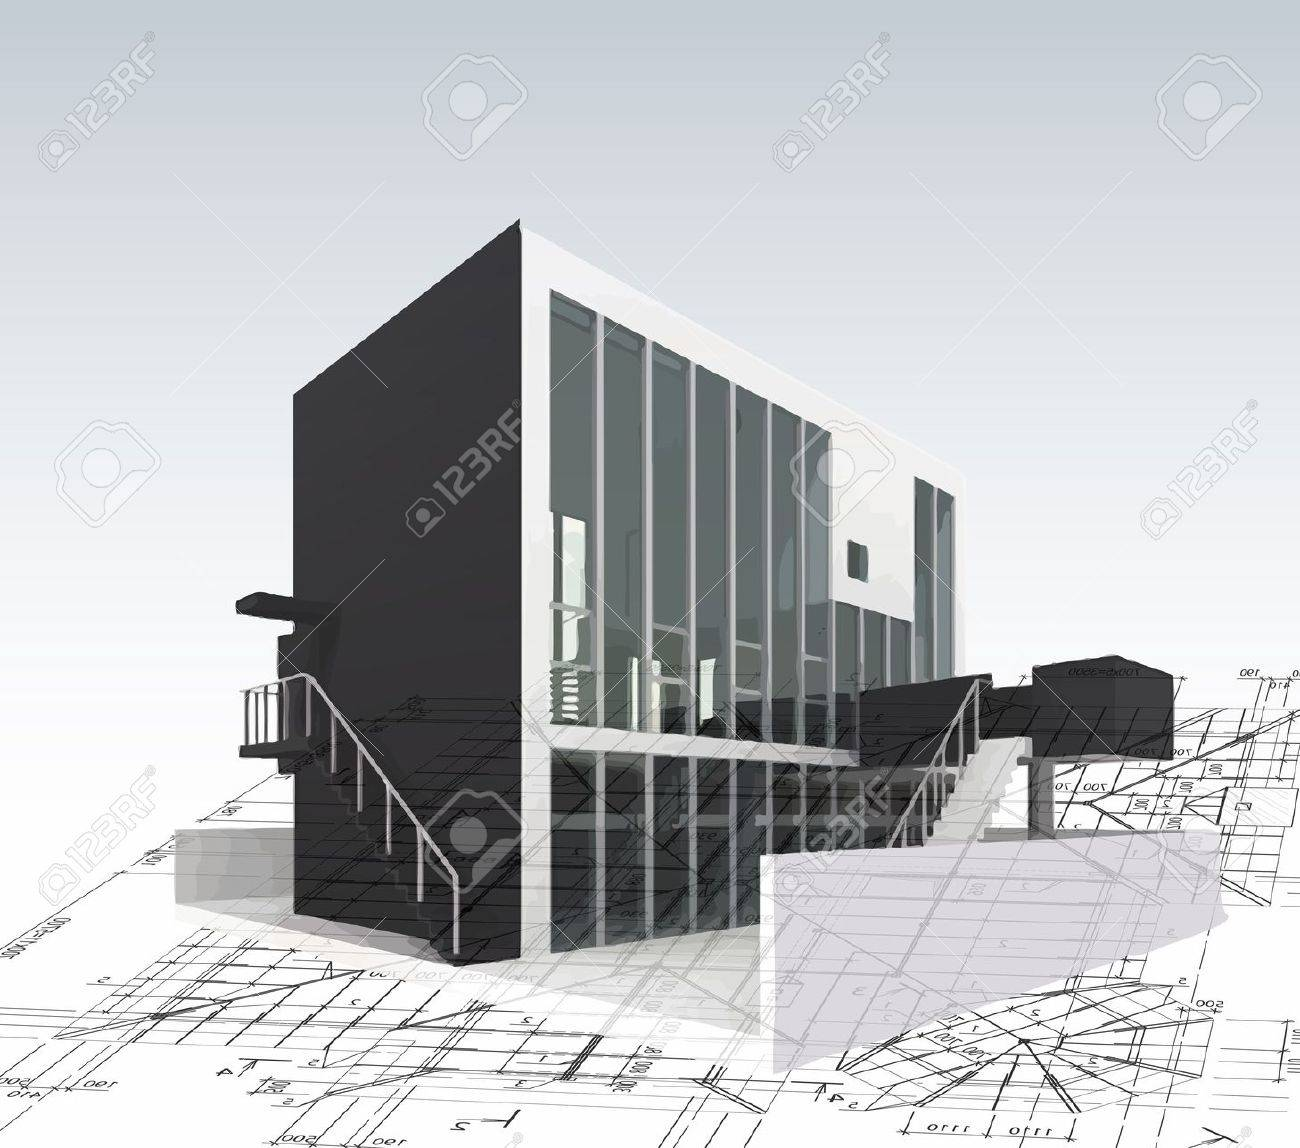 Architecture model house with plan and blueprints - 12718684